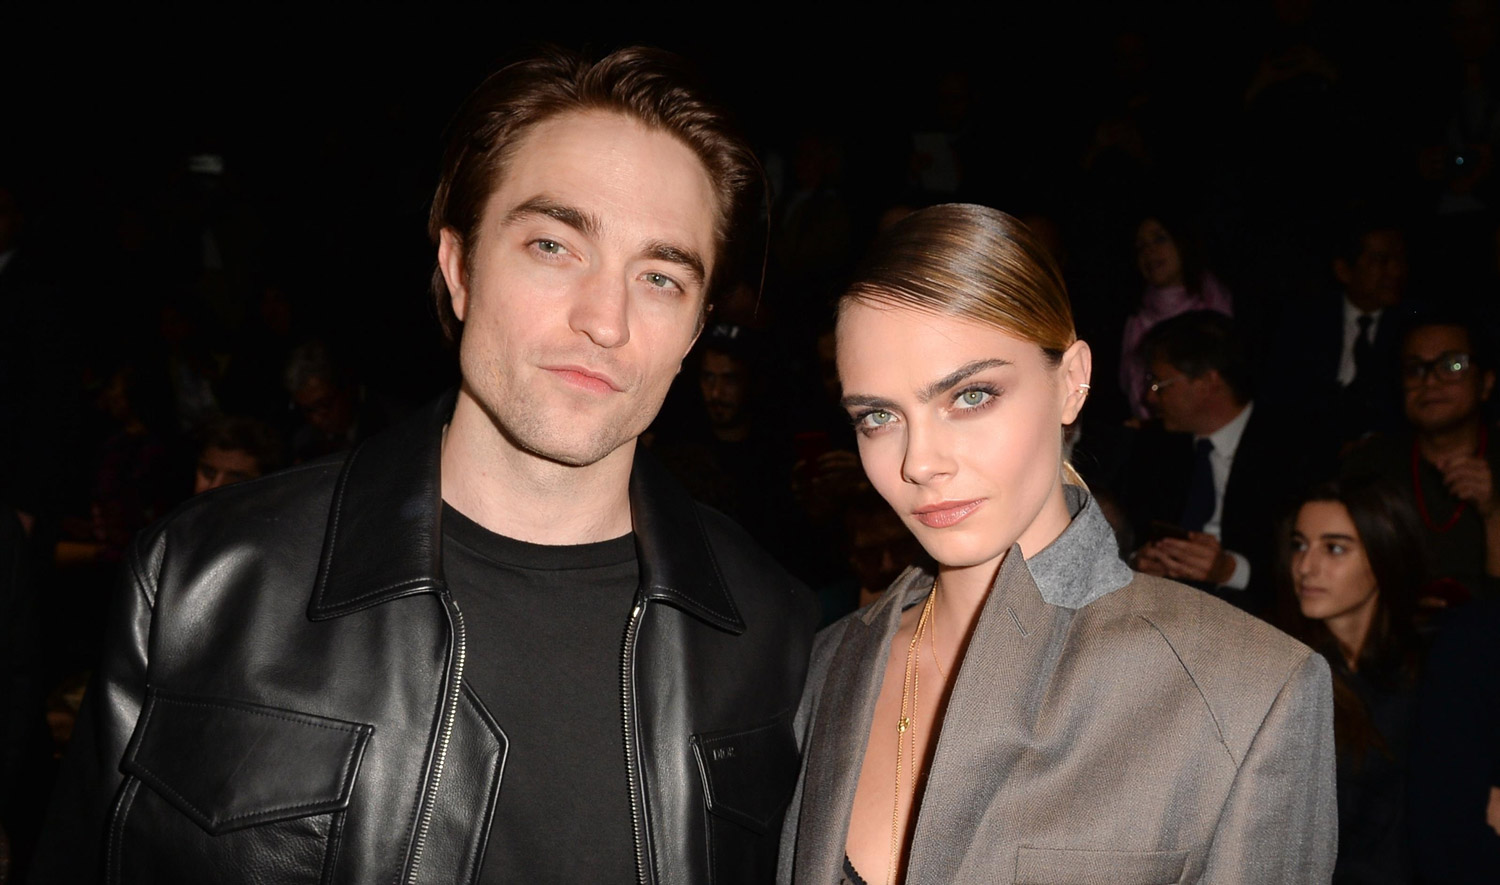 Cara Delevingne Meets Up with Friend Robert Pattinson at ...